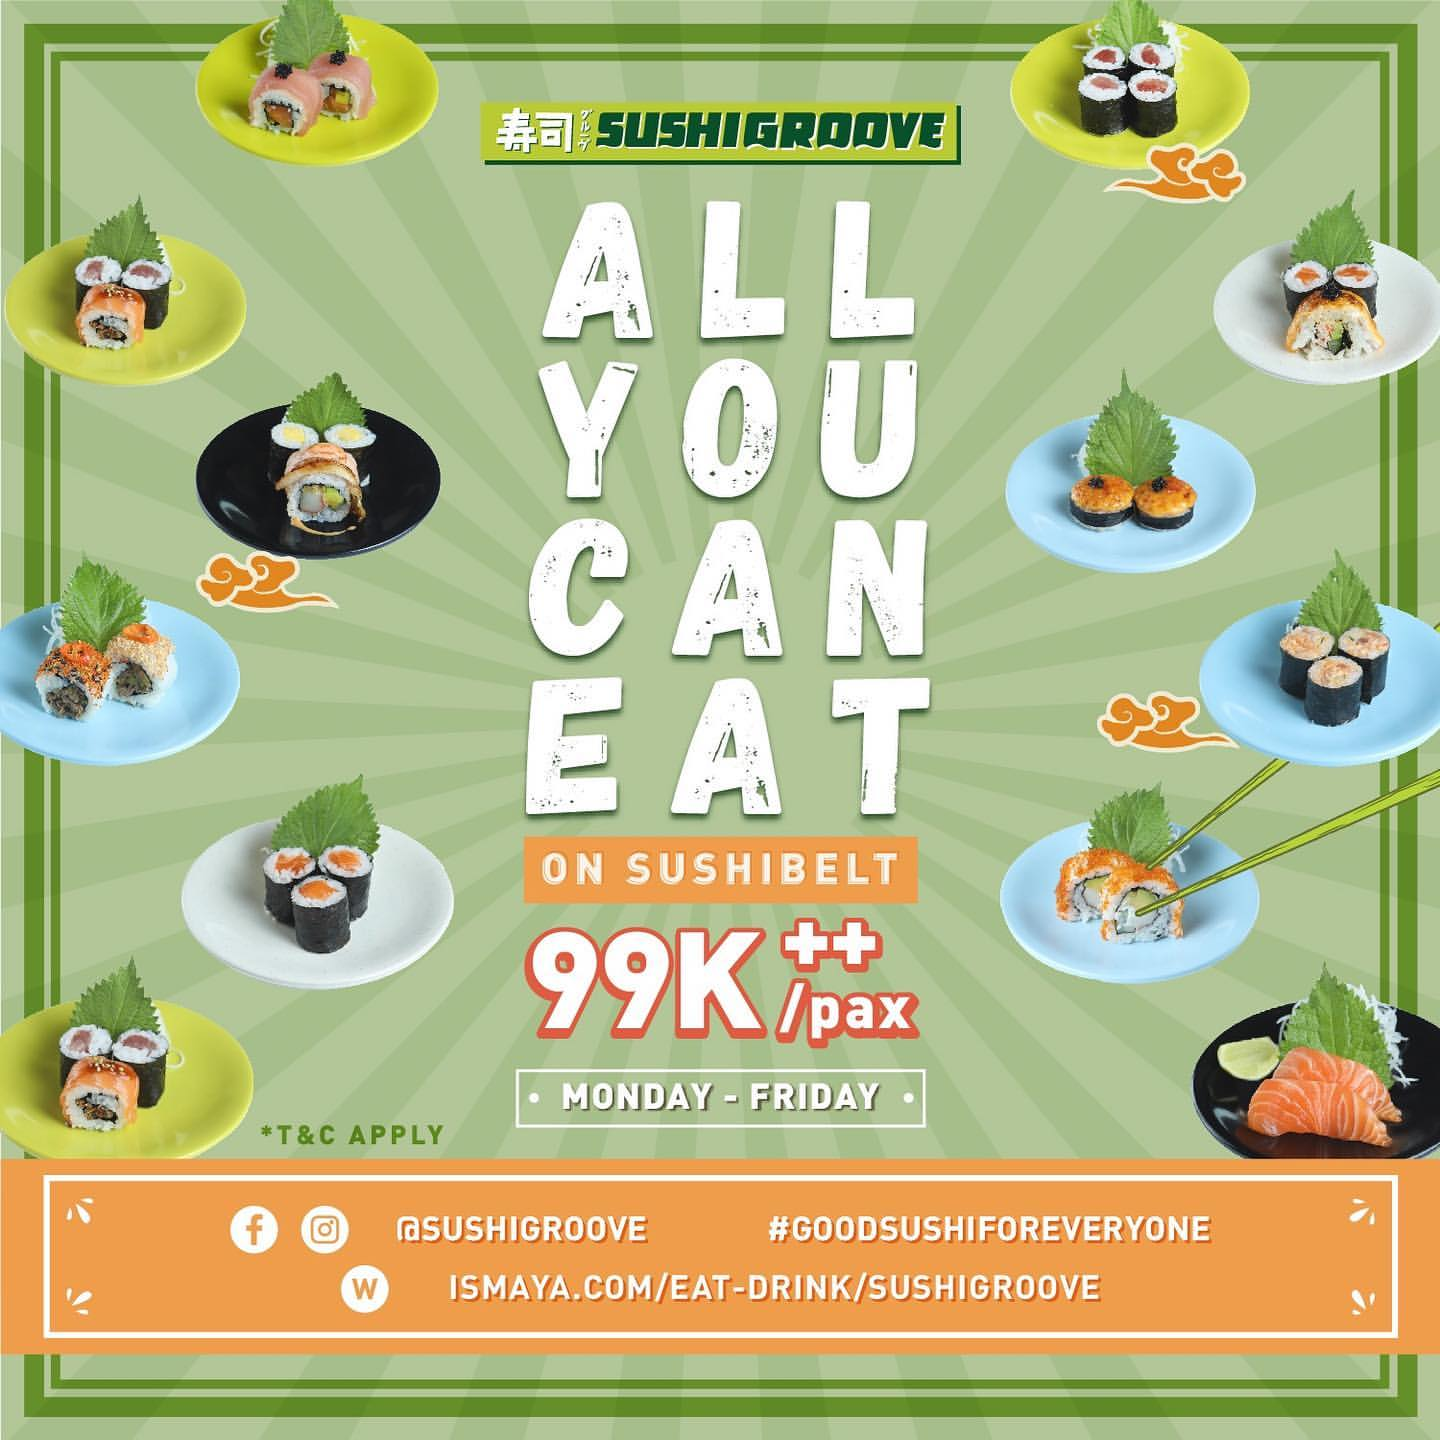 SUSHI GROOVE Promo All You Can Eat on Sushi Belt 99 K++ per pax